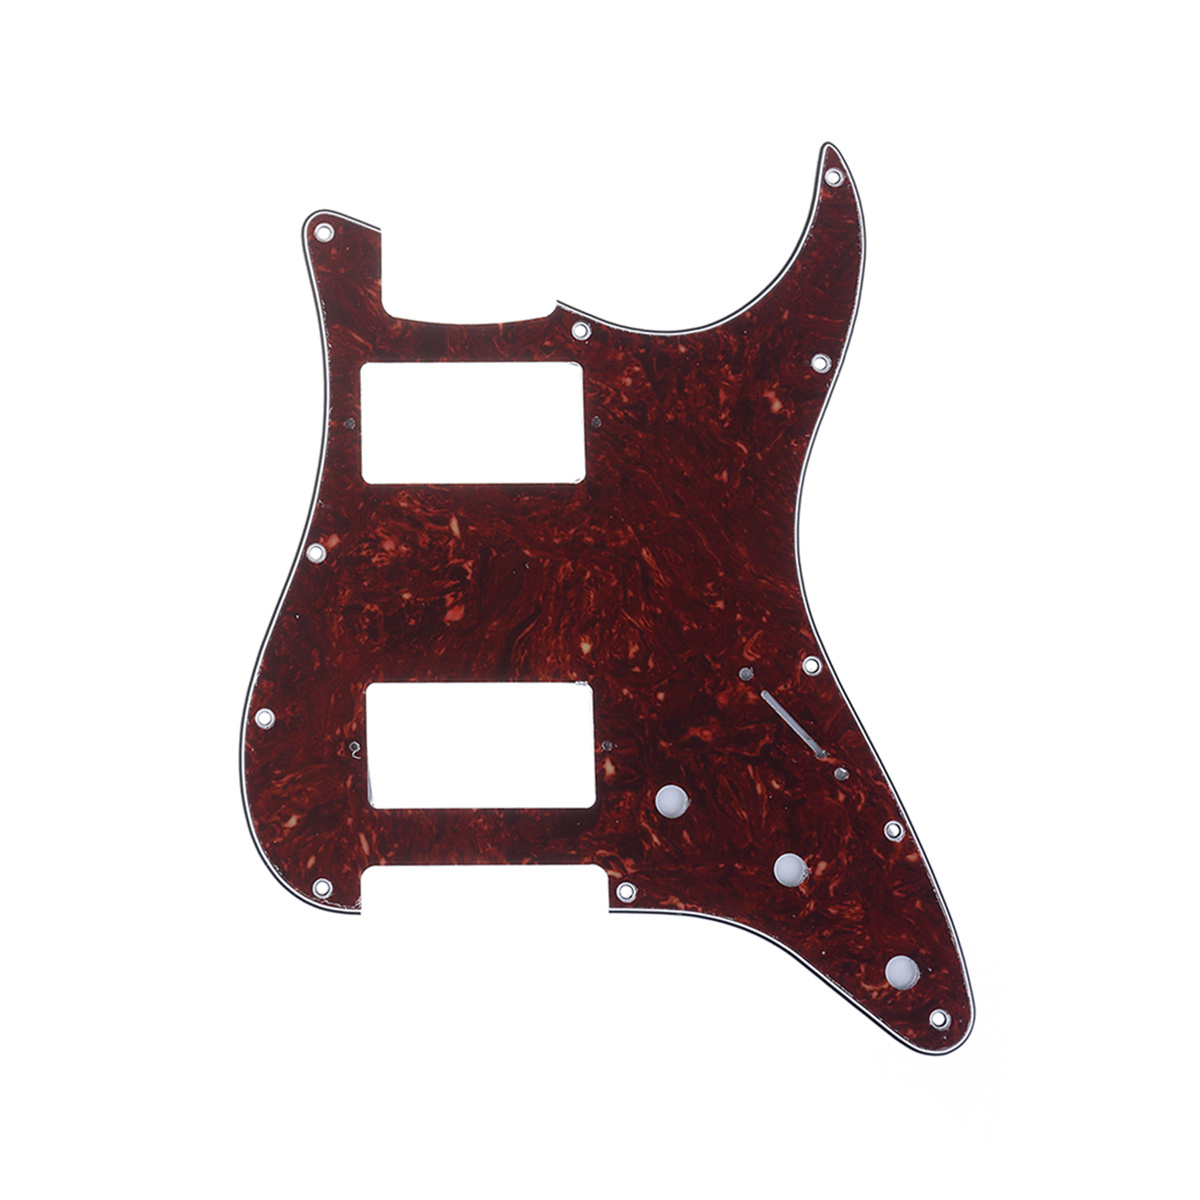 3 Ply Strat Pickguard for US//Mexico Made 11 Hole Fender Standard Stratocaster